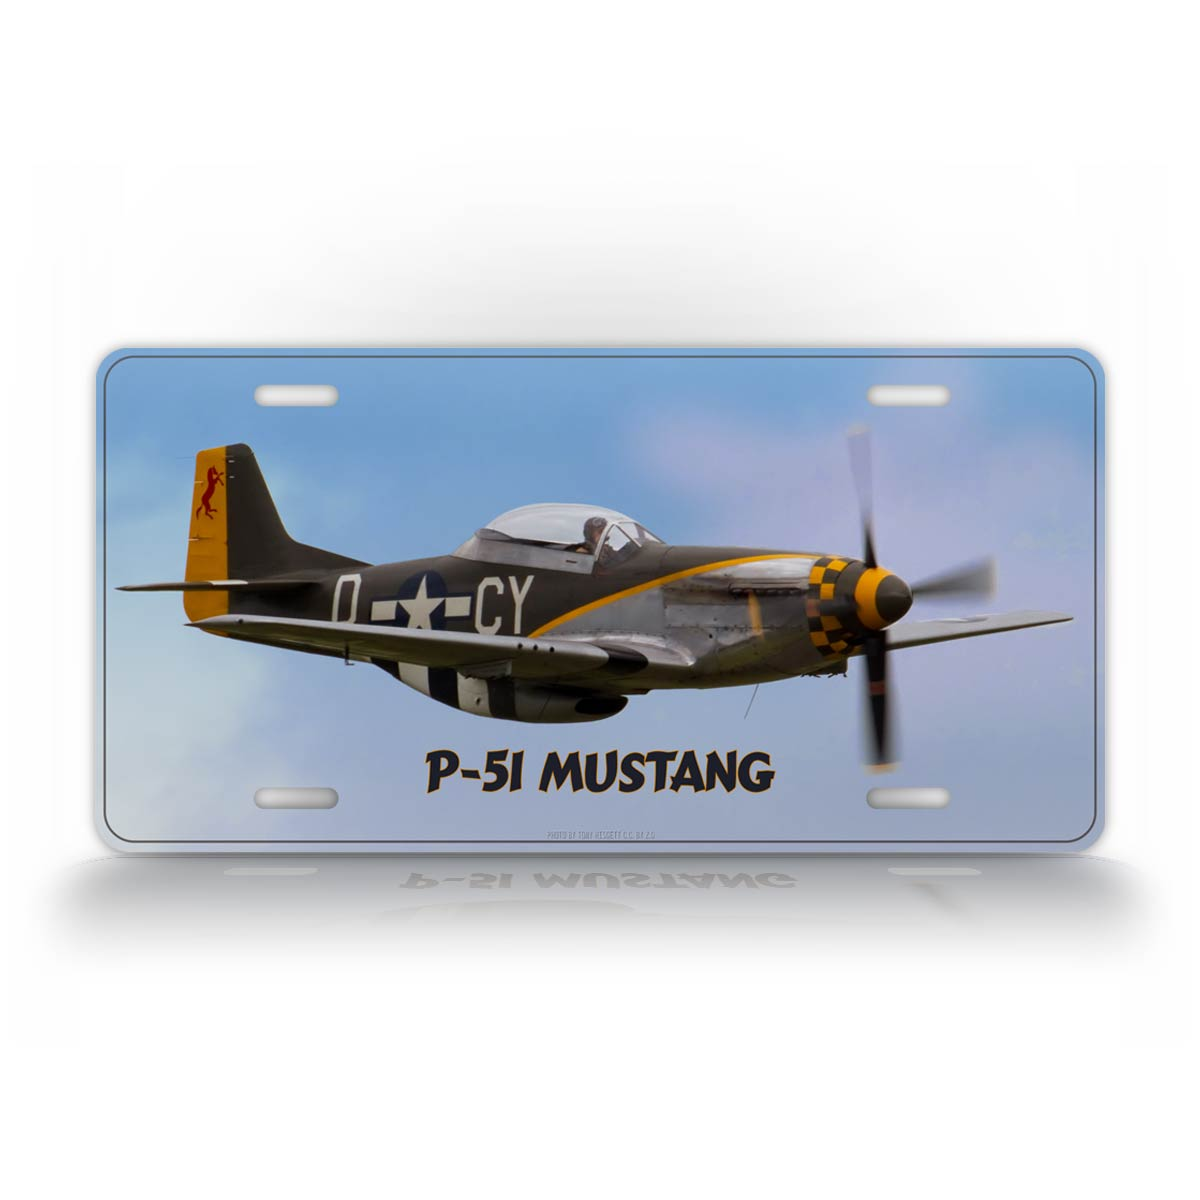 P-51 Mustang WWII Airplane License Plate